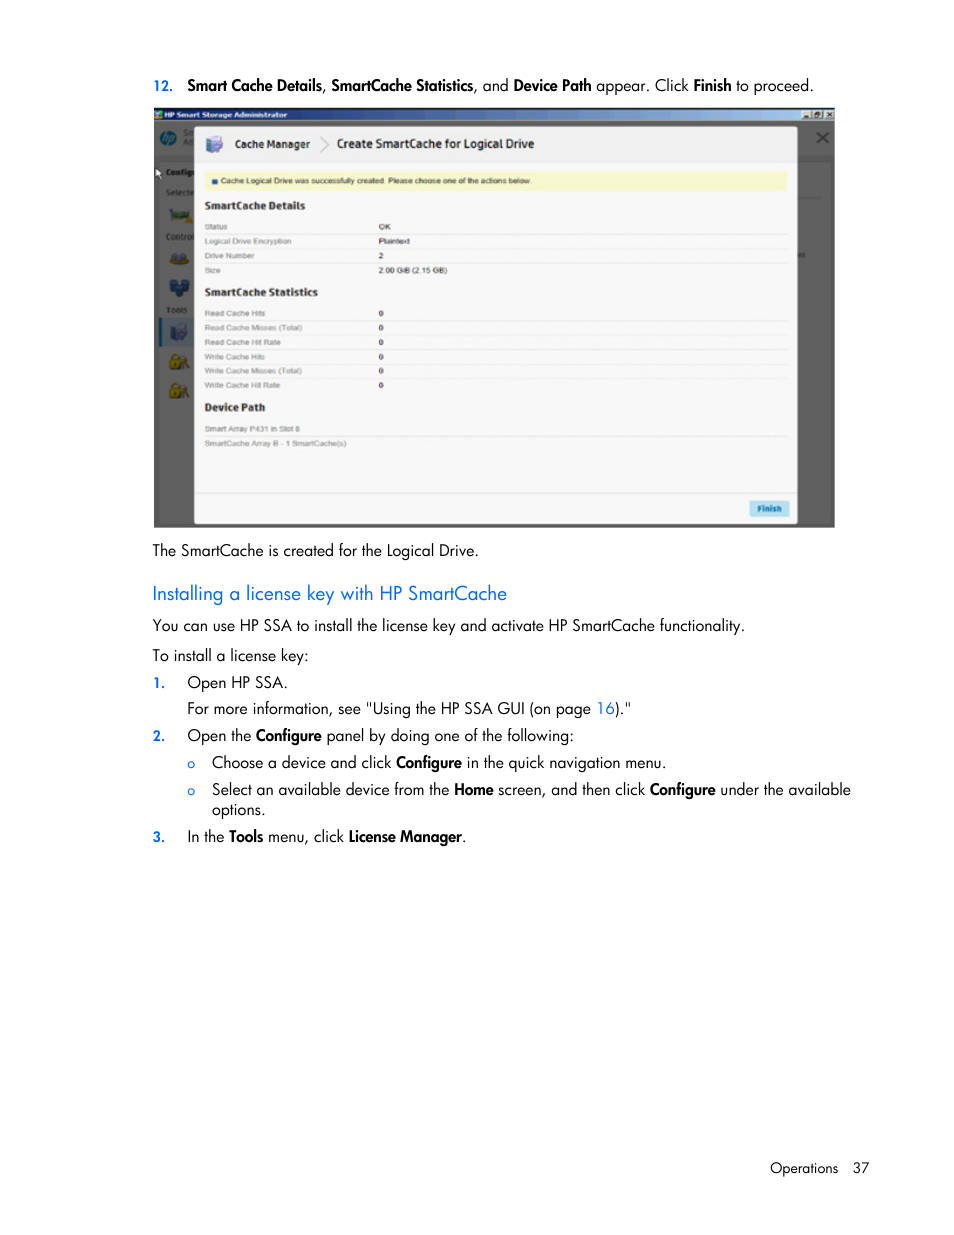 Installing a license key with hp smartcache | HP Smart